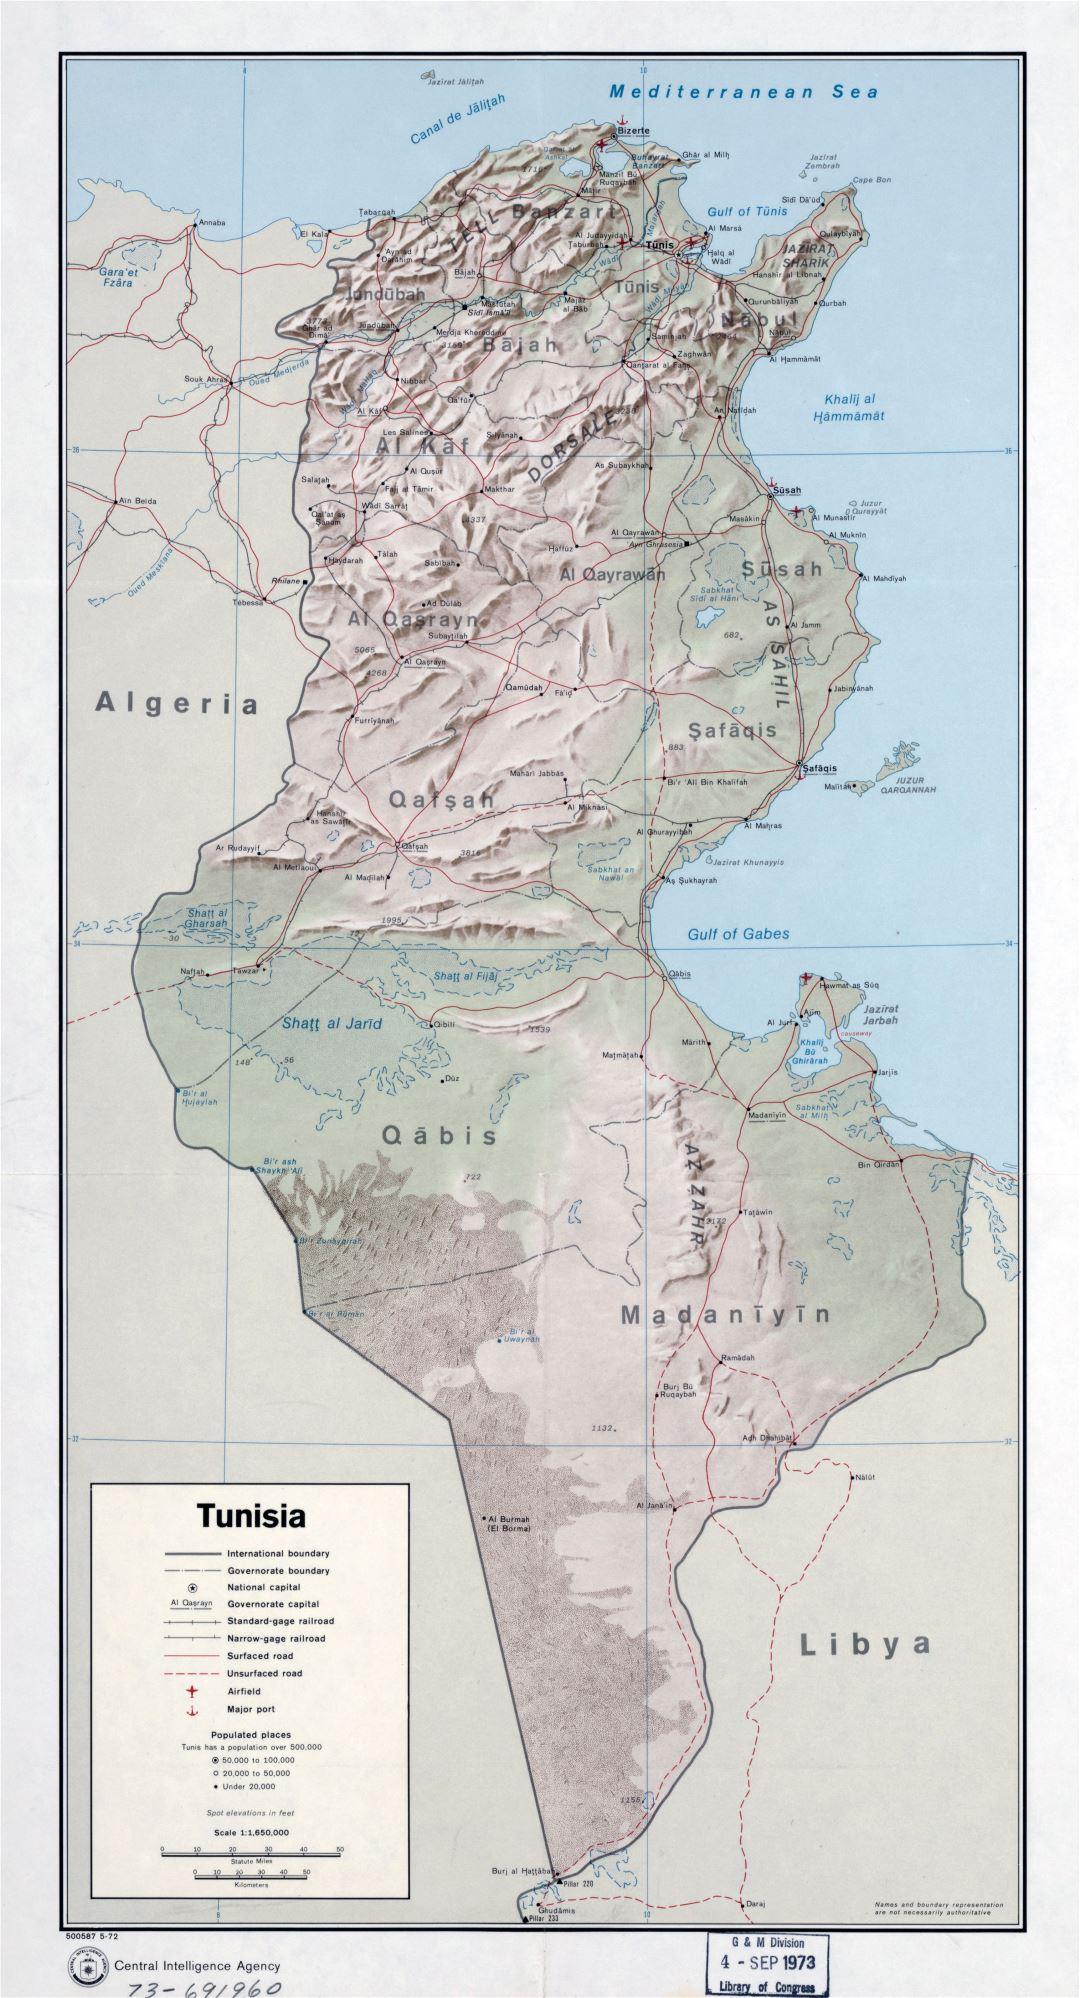 Large scale political and administrative map of Tunisia with relief, roads, railroads, major cities, ports and airports - 1972